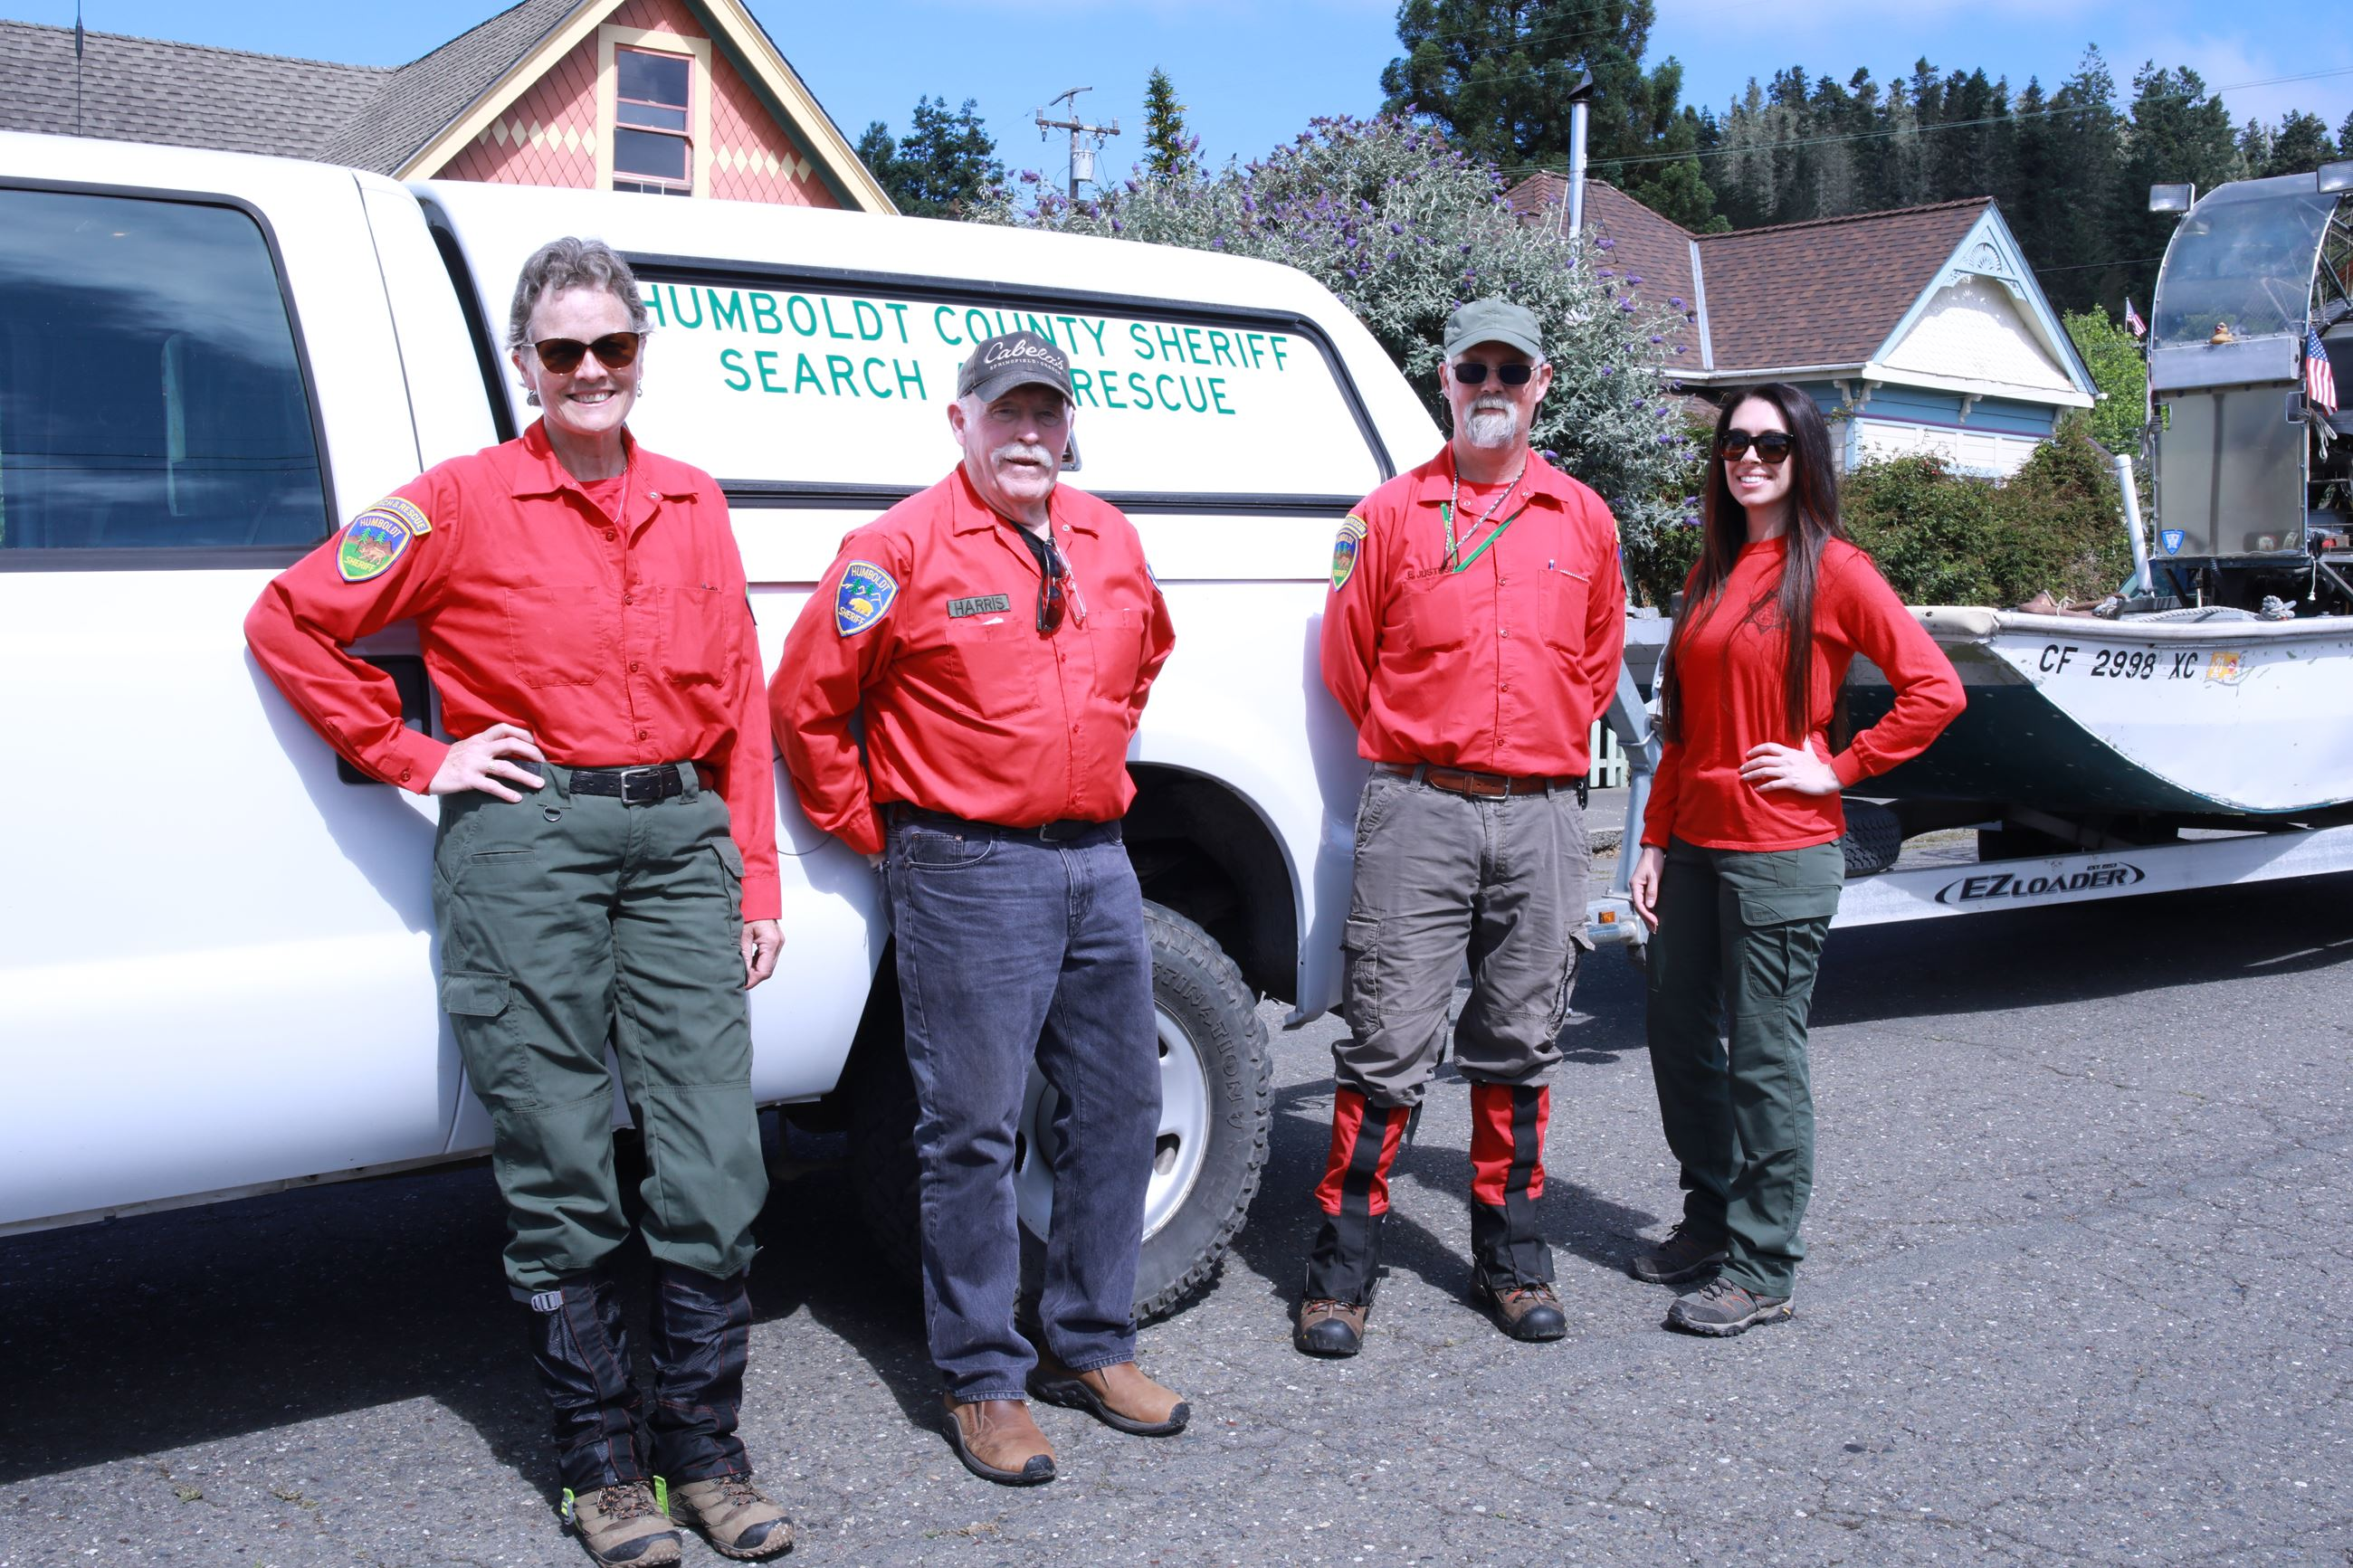 Sheriff's Search and Rescue Posse members stand in front of a rescue vehicle